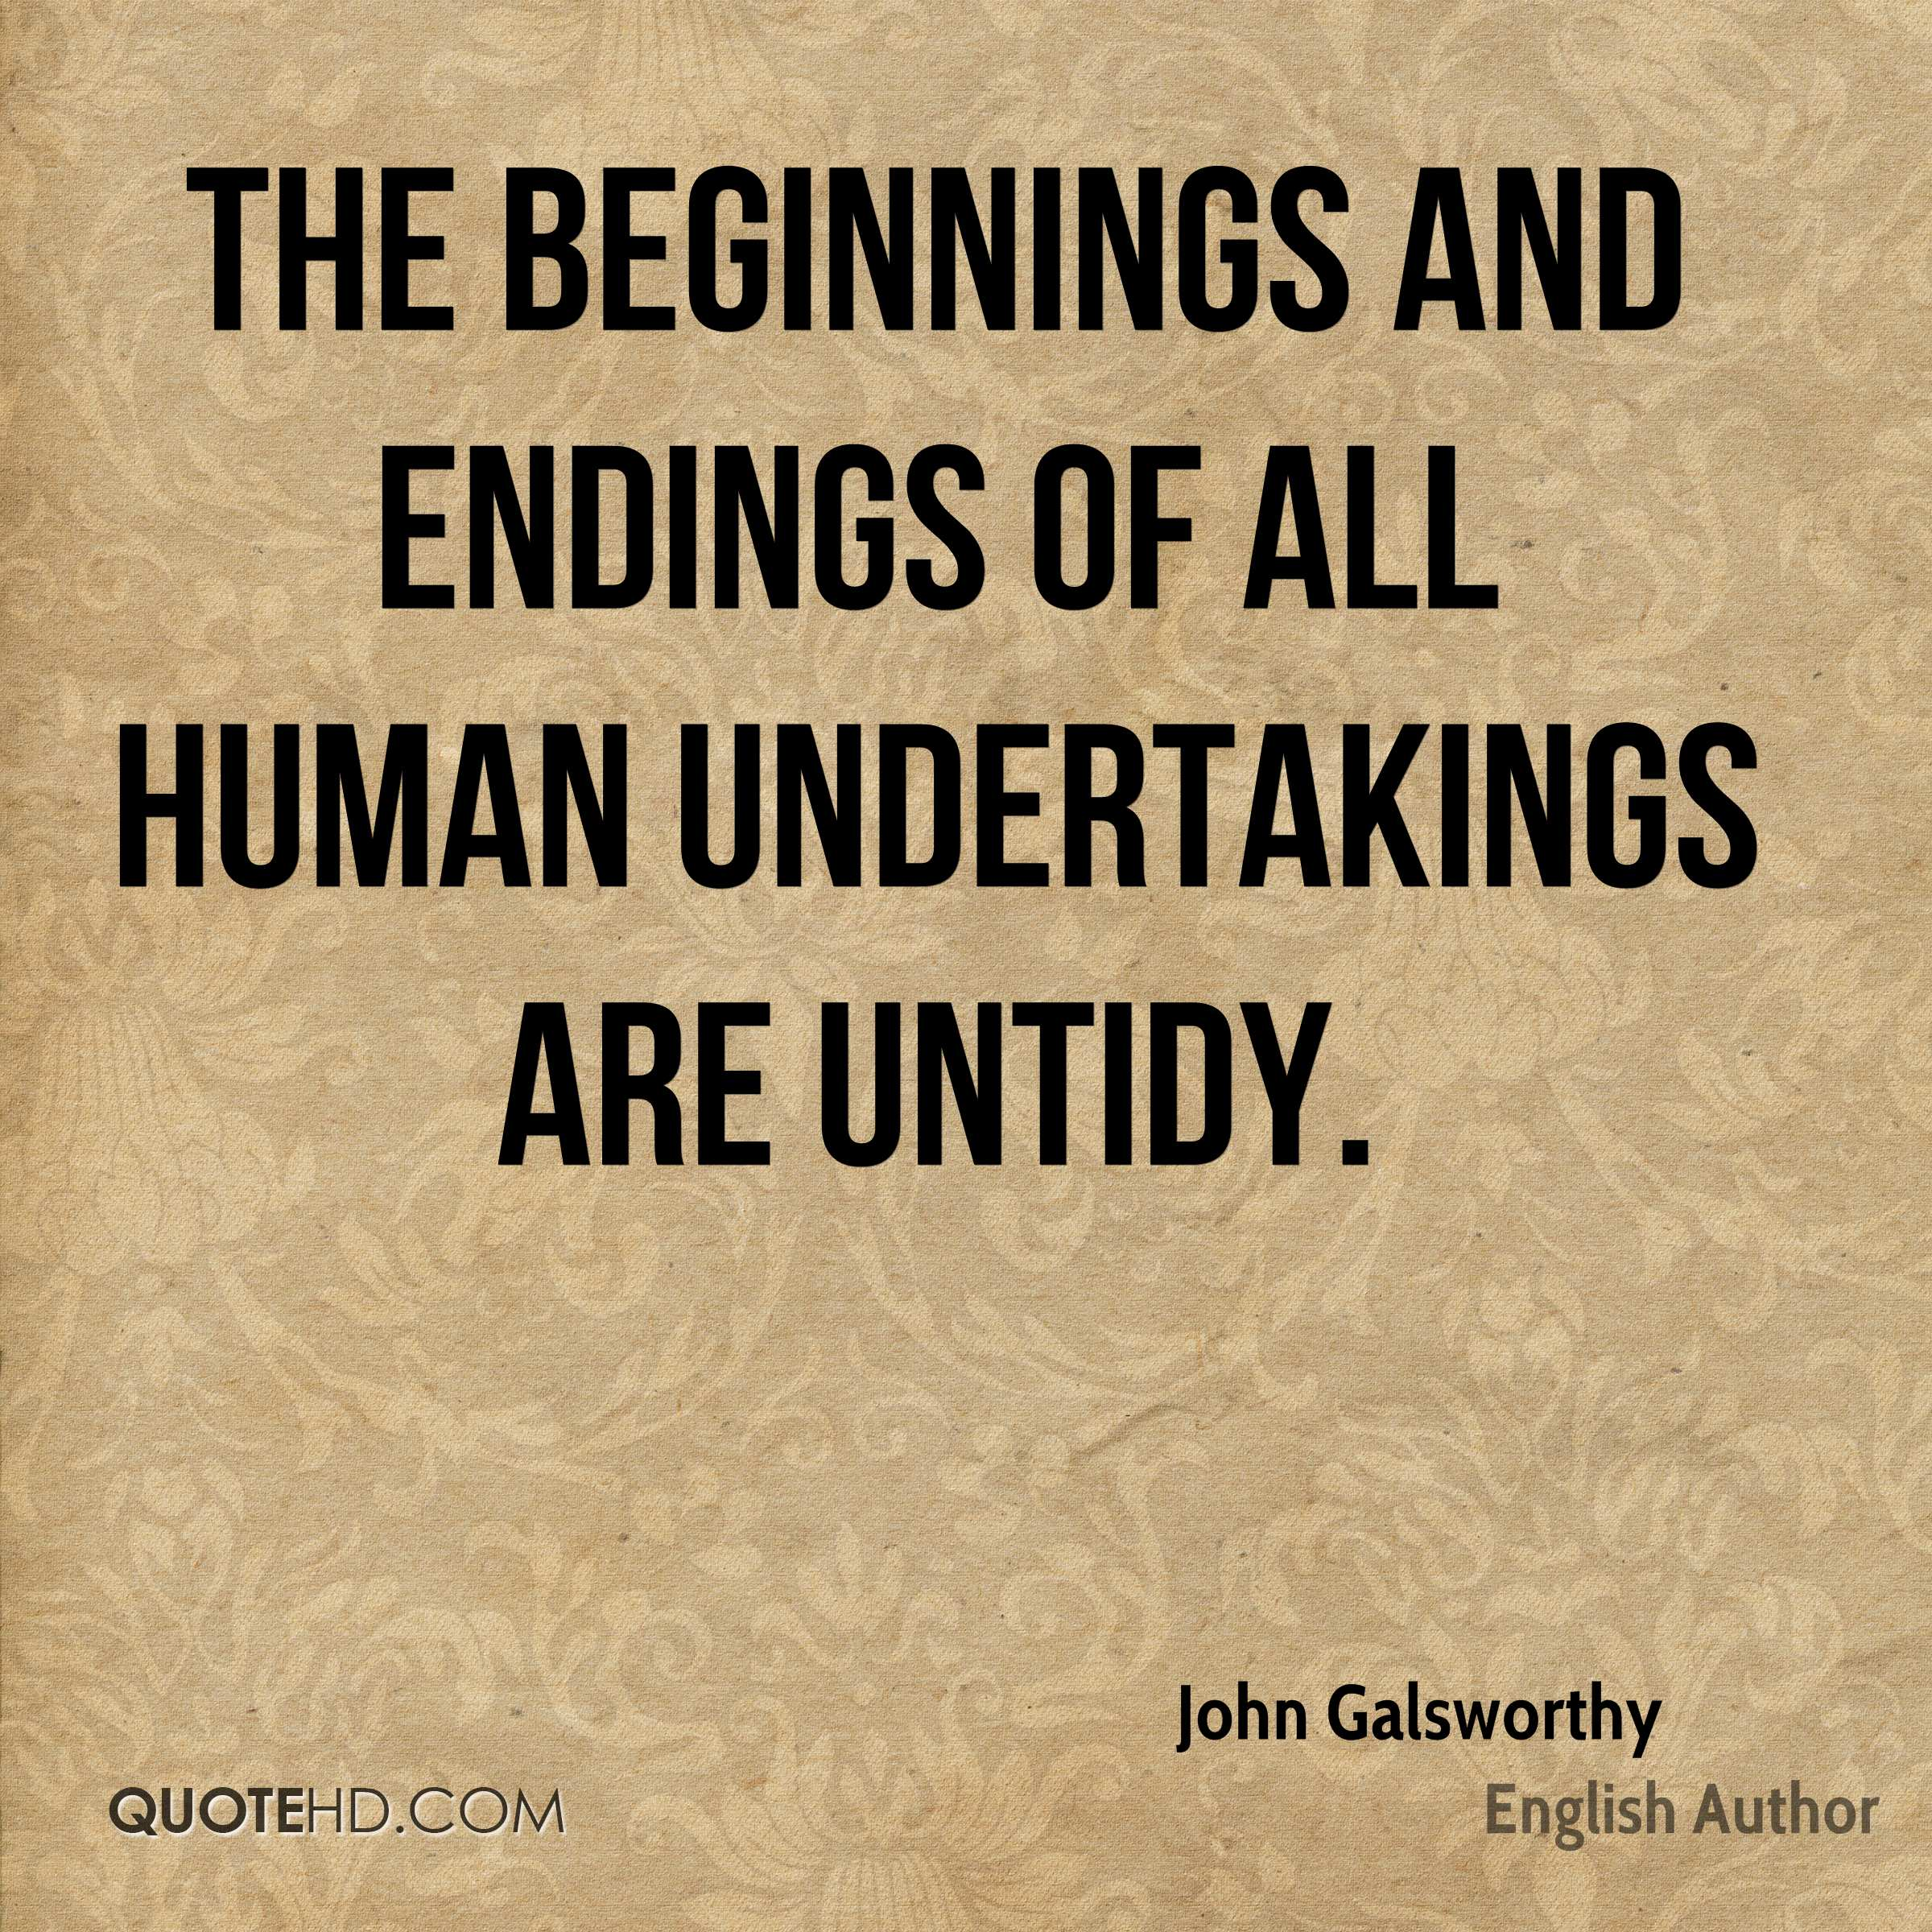 The beginnings and endings of all human undertakings are untidy.